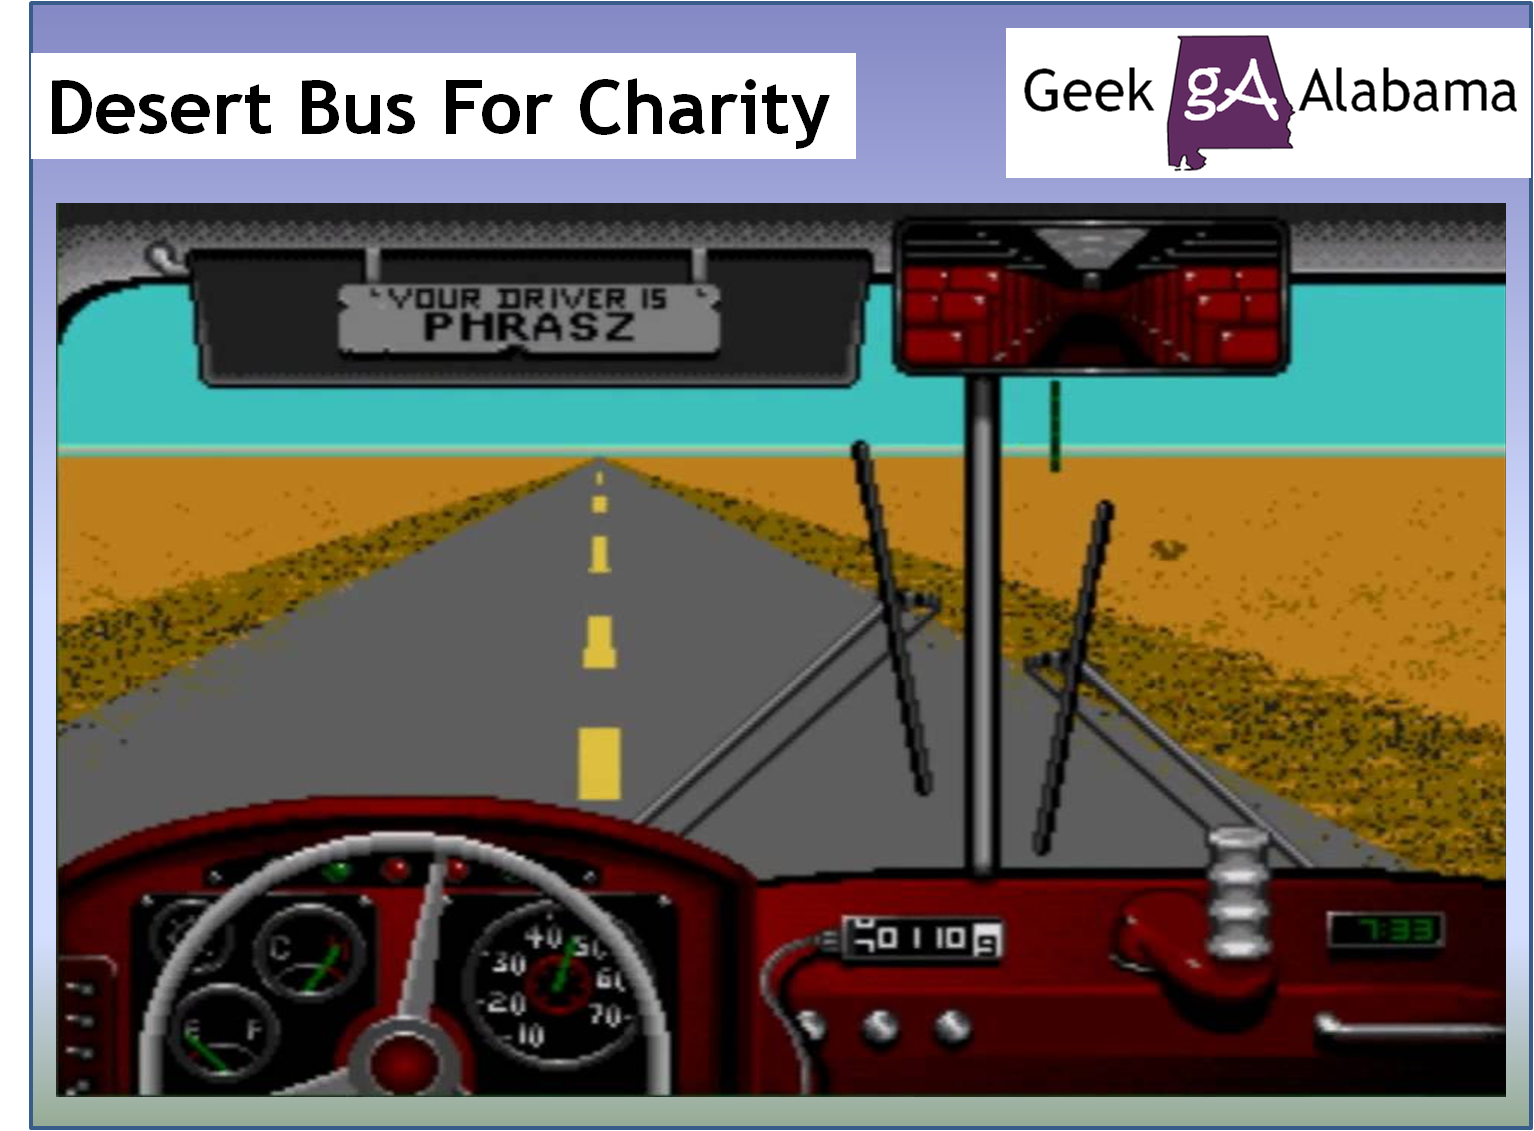 Geek on bus